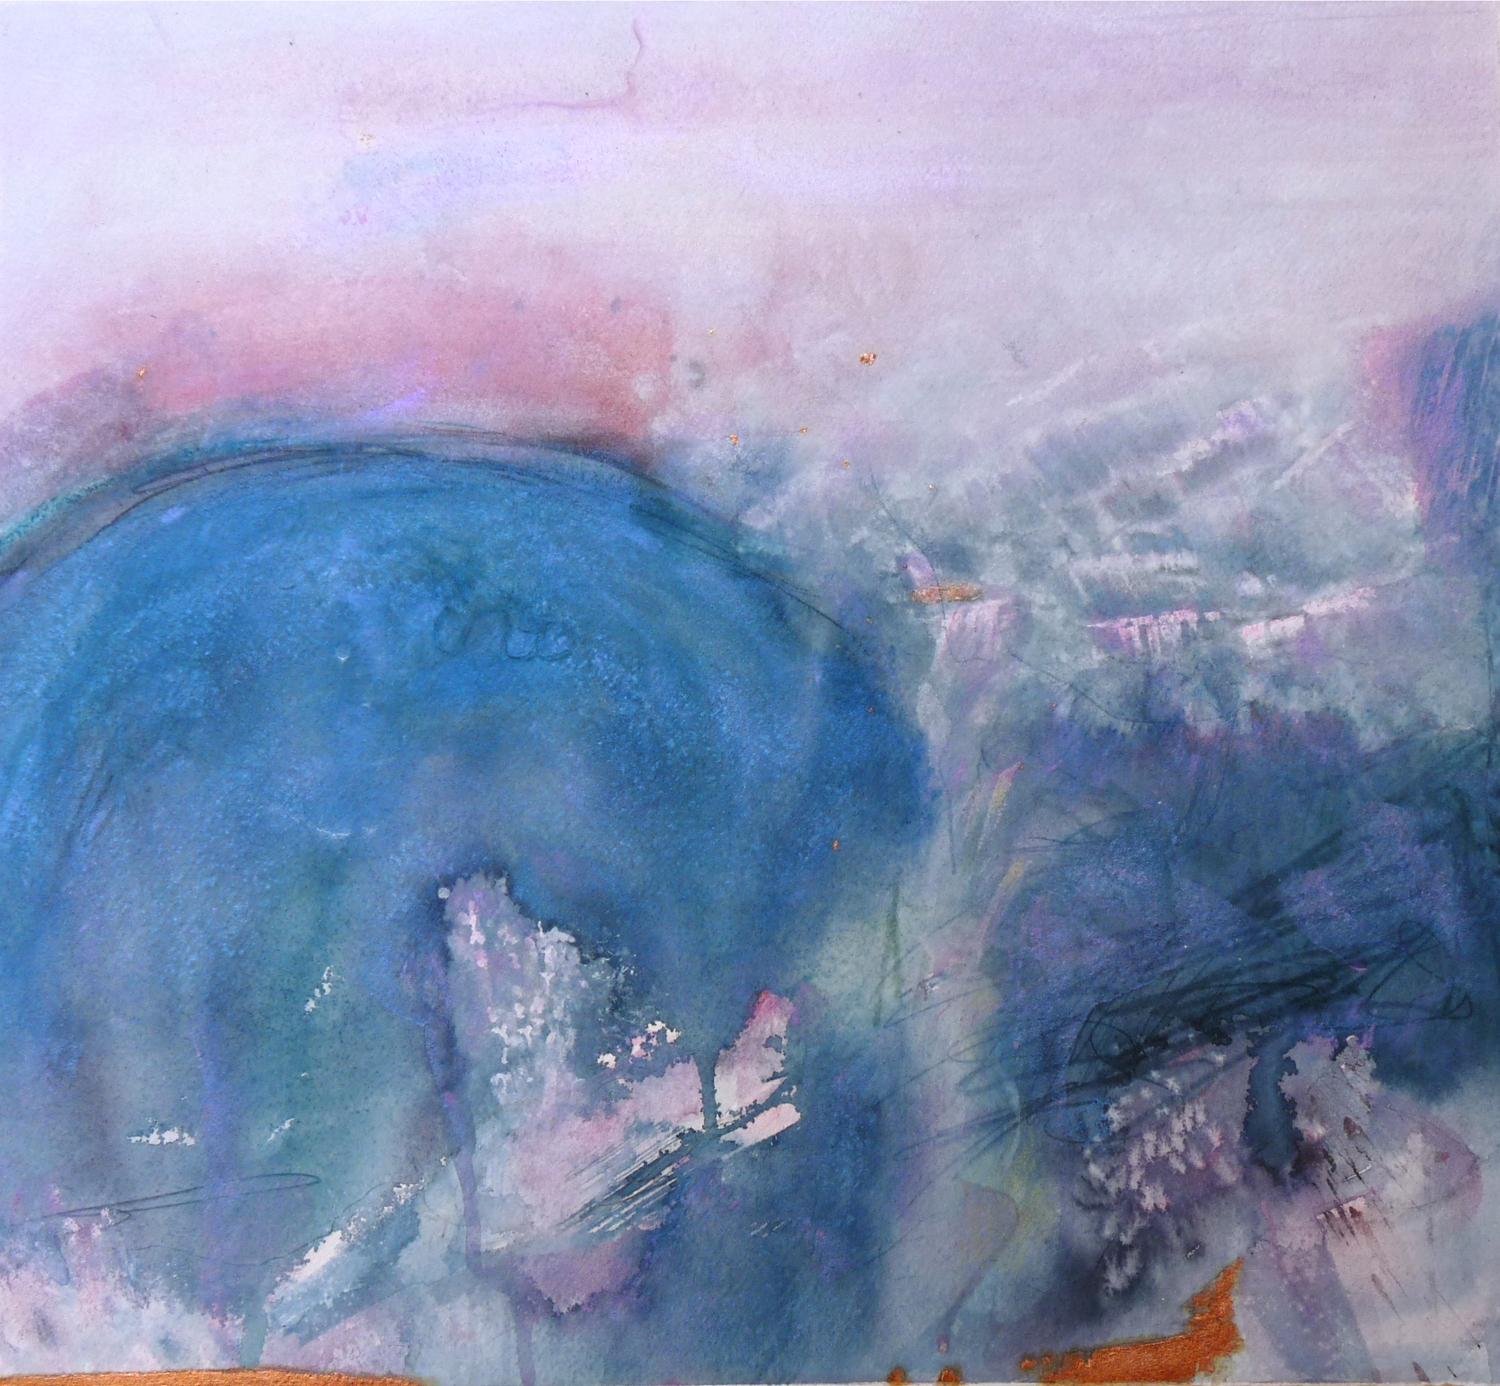 """WAVE     15 1/2"""" x 14"""" — Watercolor and copper leaf on w/c paper    16"""" x 22"""" matted    $600.00"""